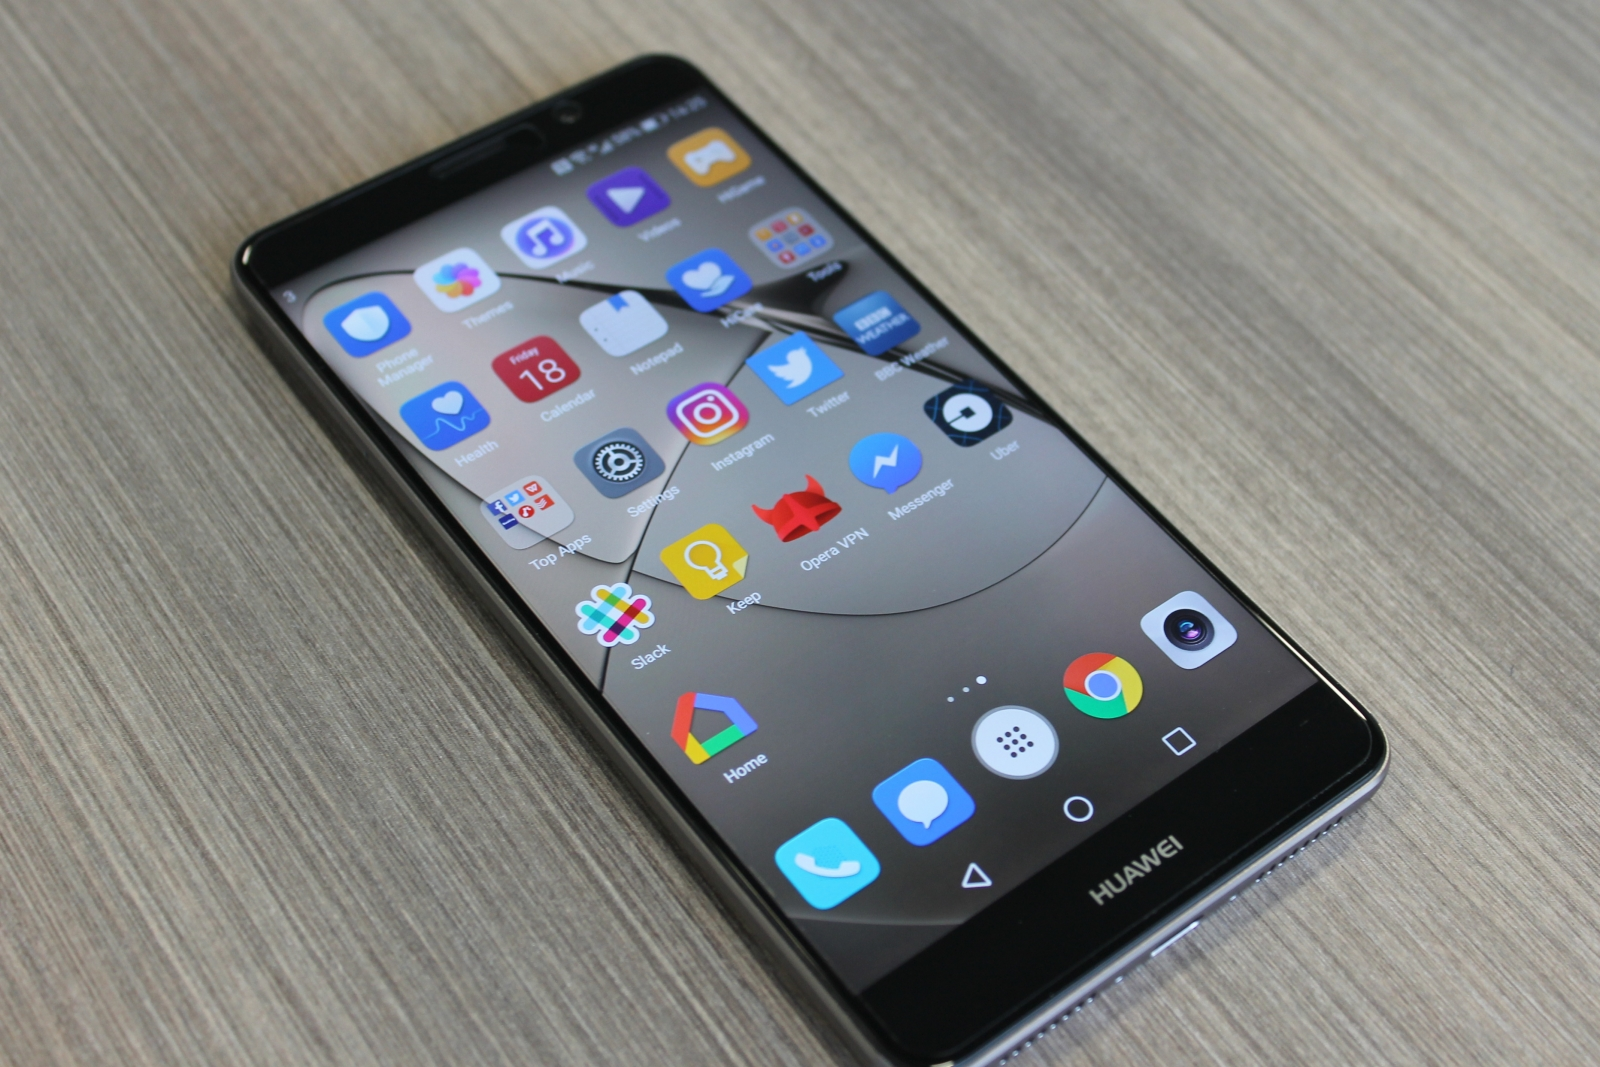 huawei mate 9 review taking the fight to samsung with a machine learning monster